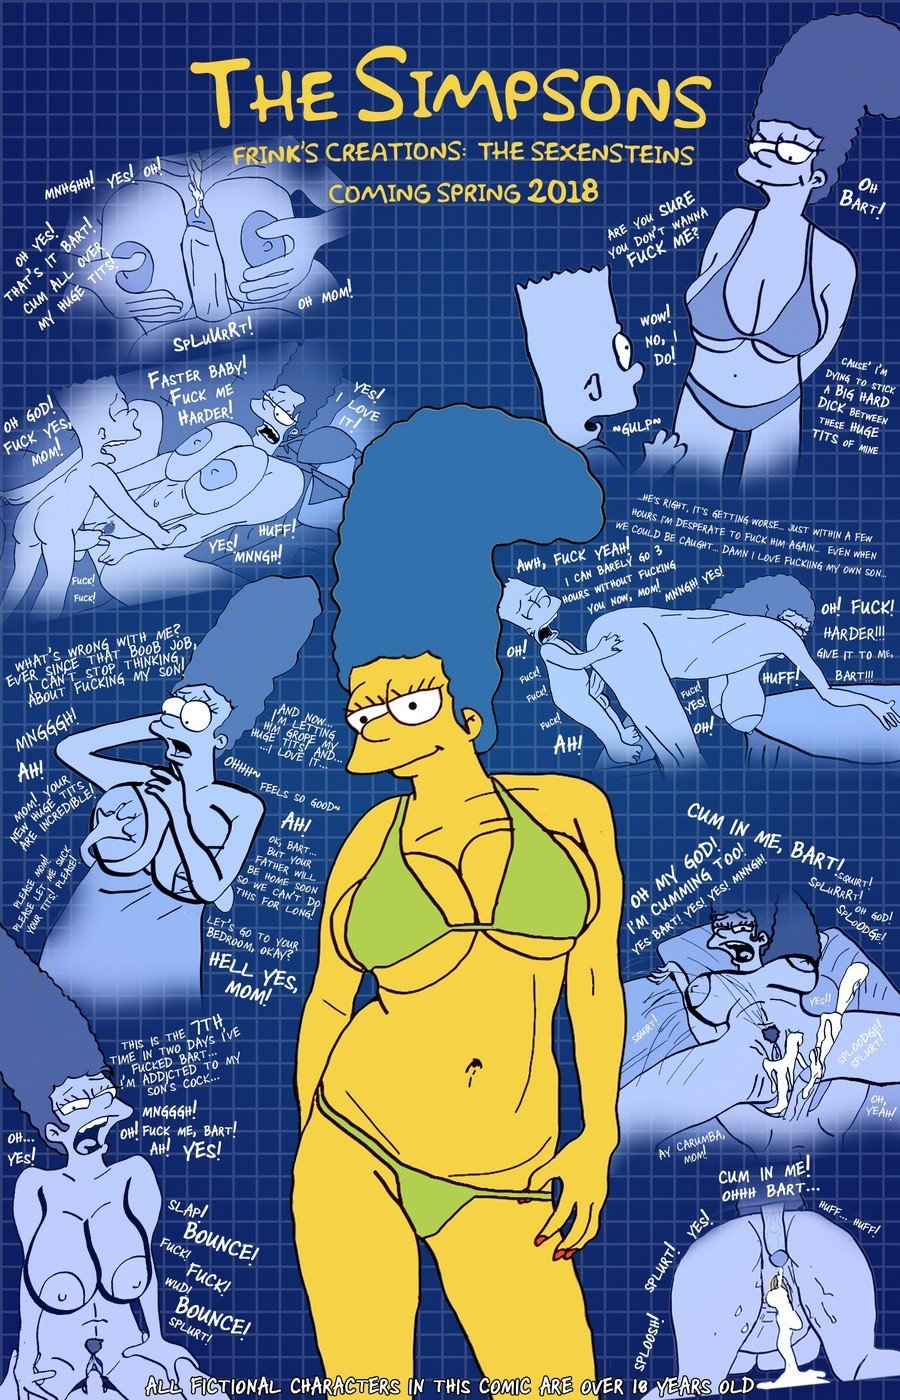 The Simpsons are The Sexenteins - 0